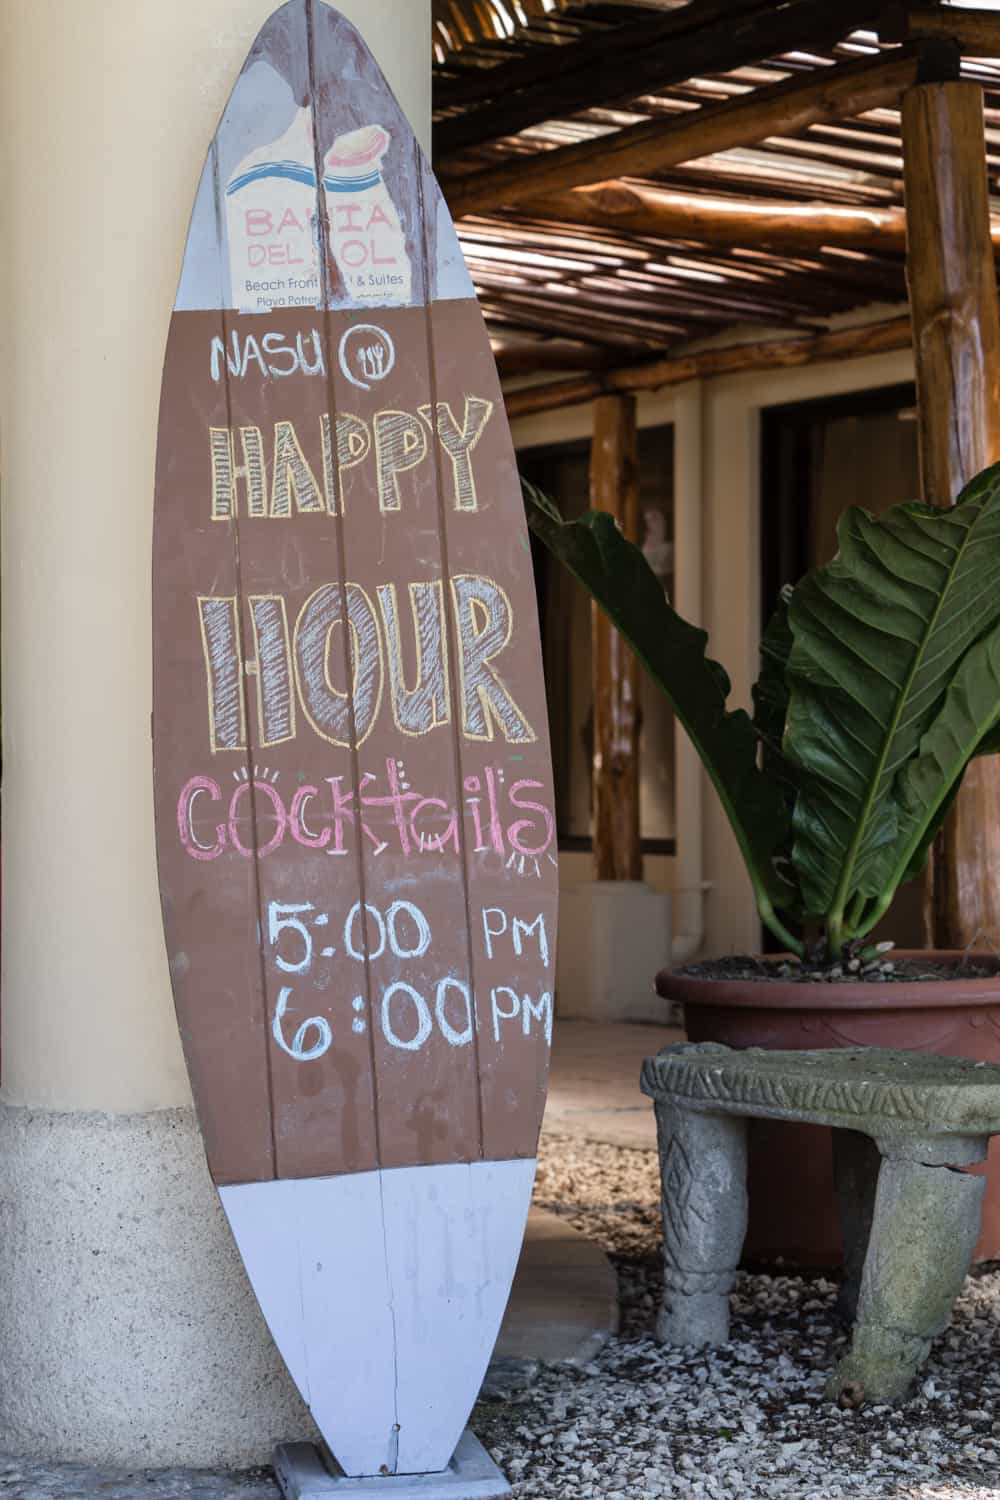 Enjoy happy hour at Nasu restaurant in Guanacaste.